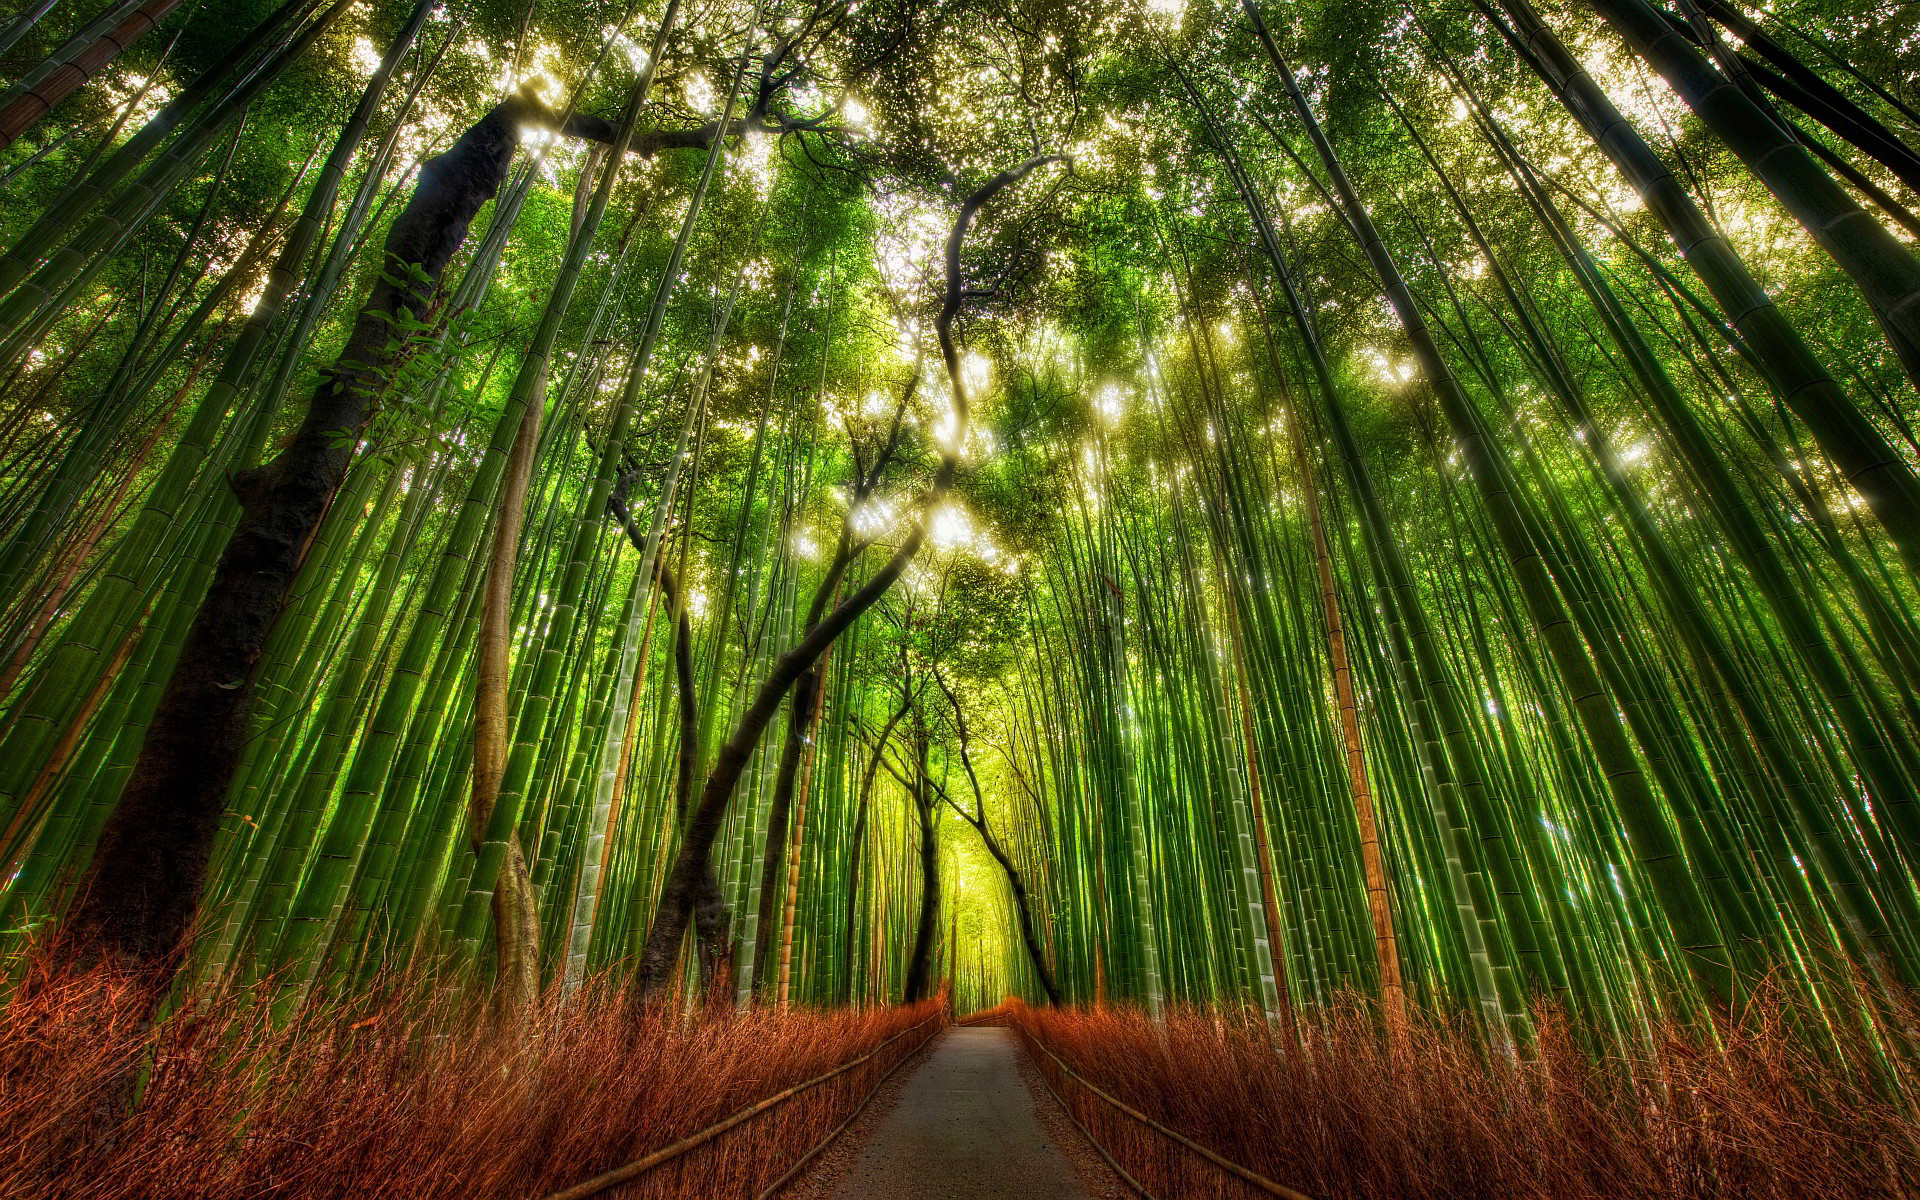 1920x1200 Forest Bamboo HD Desktop Wallpaper, Background Image